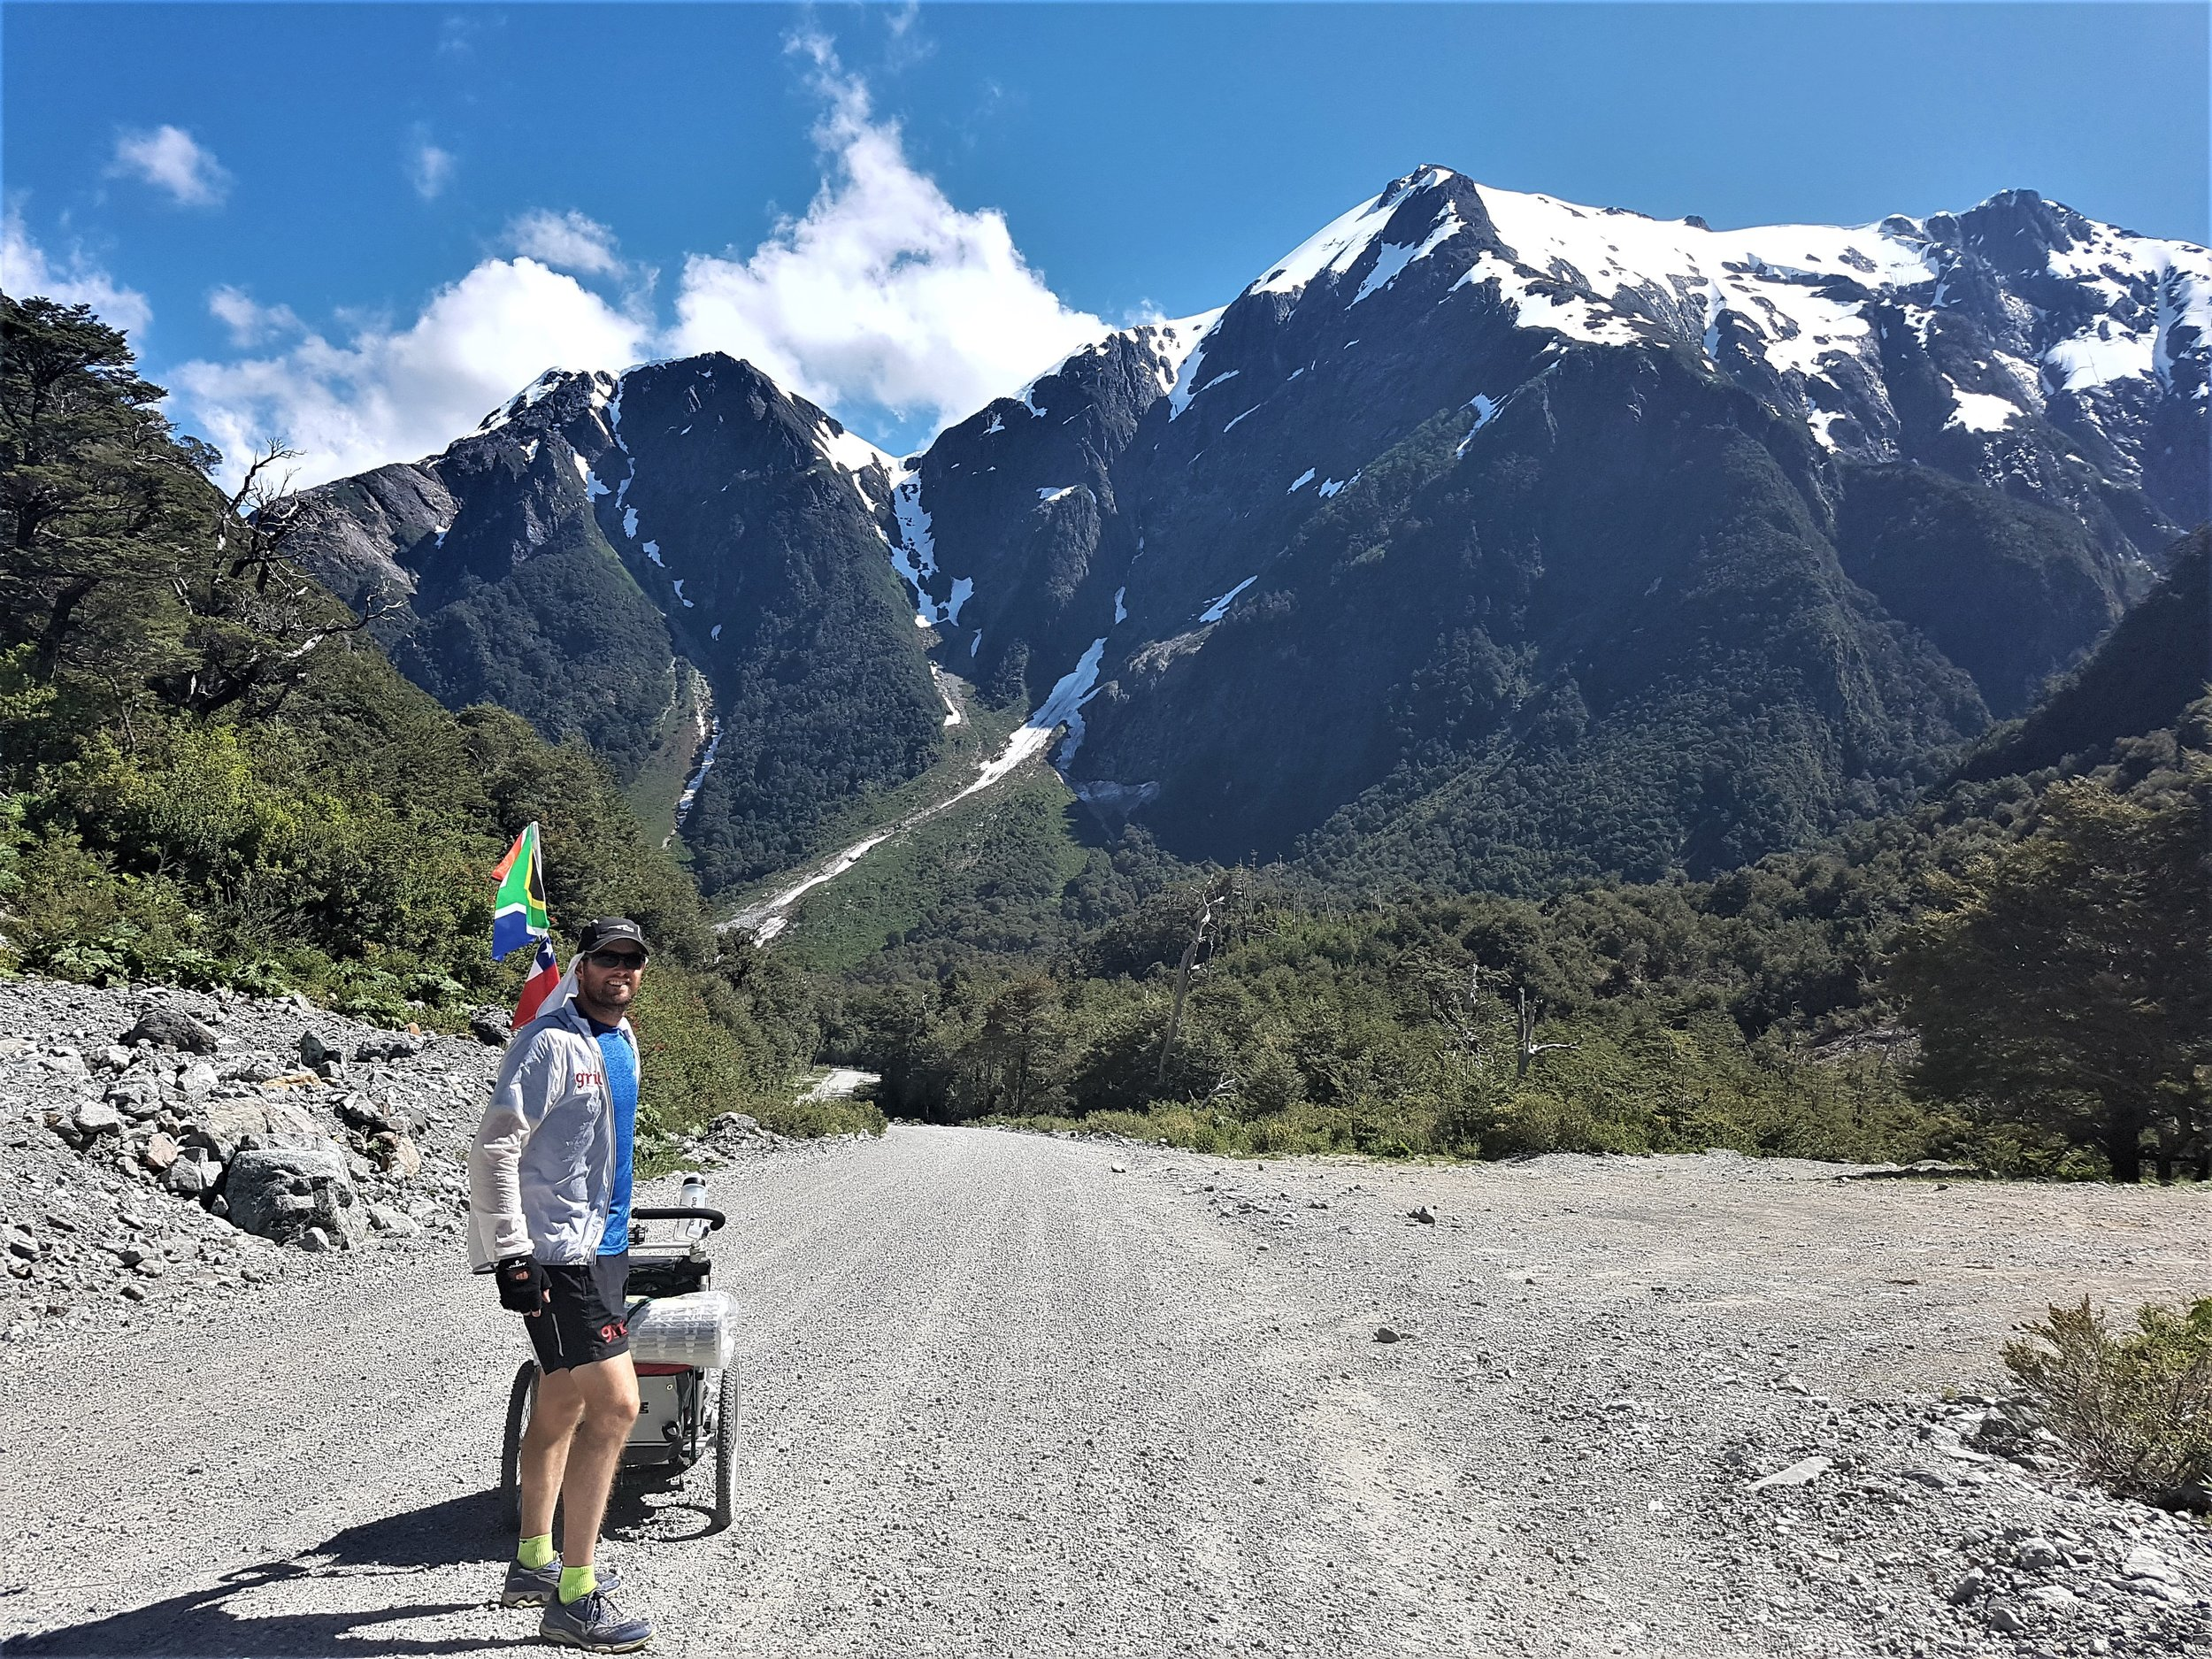 A running expedition through Patagonia.